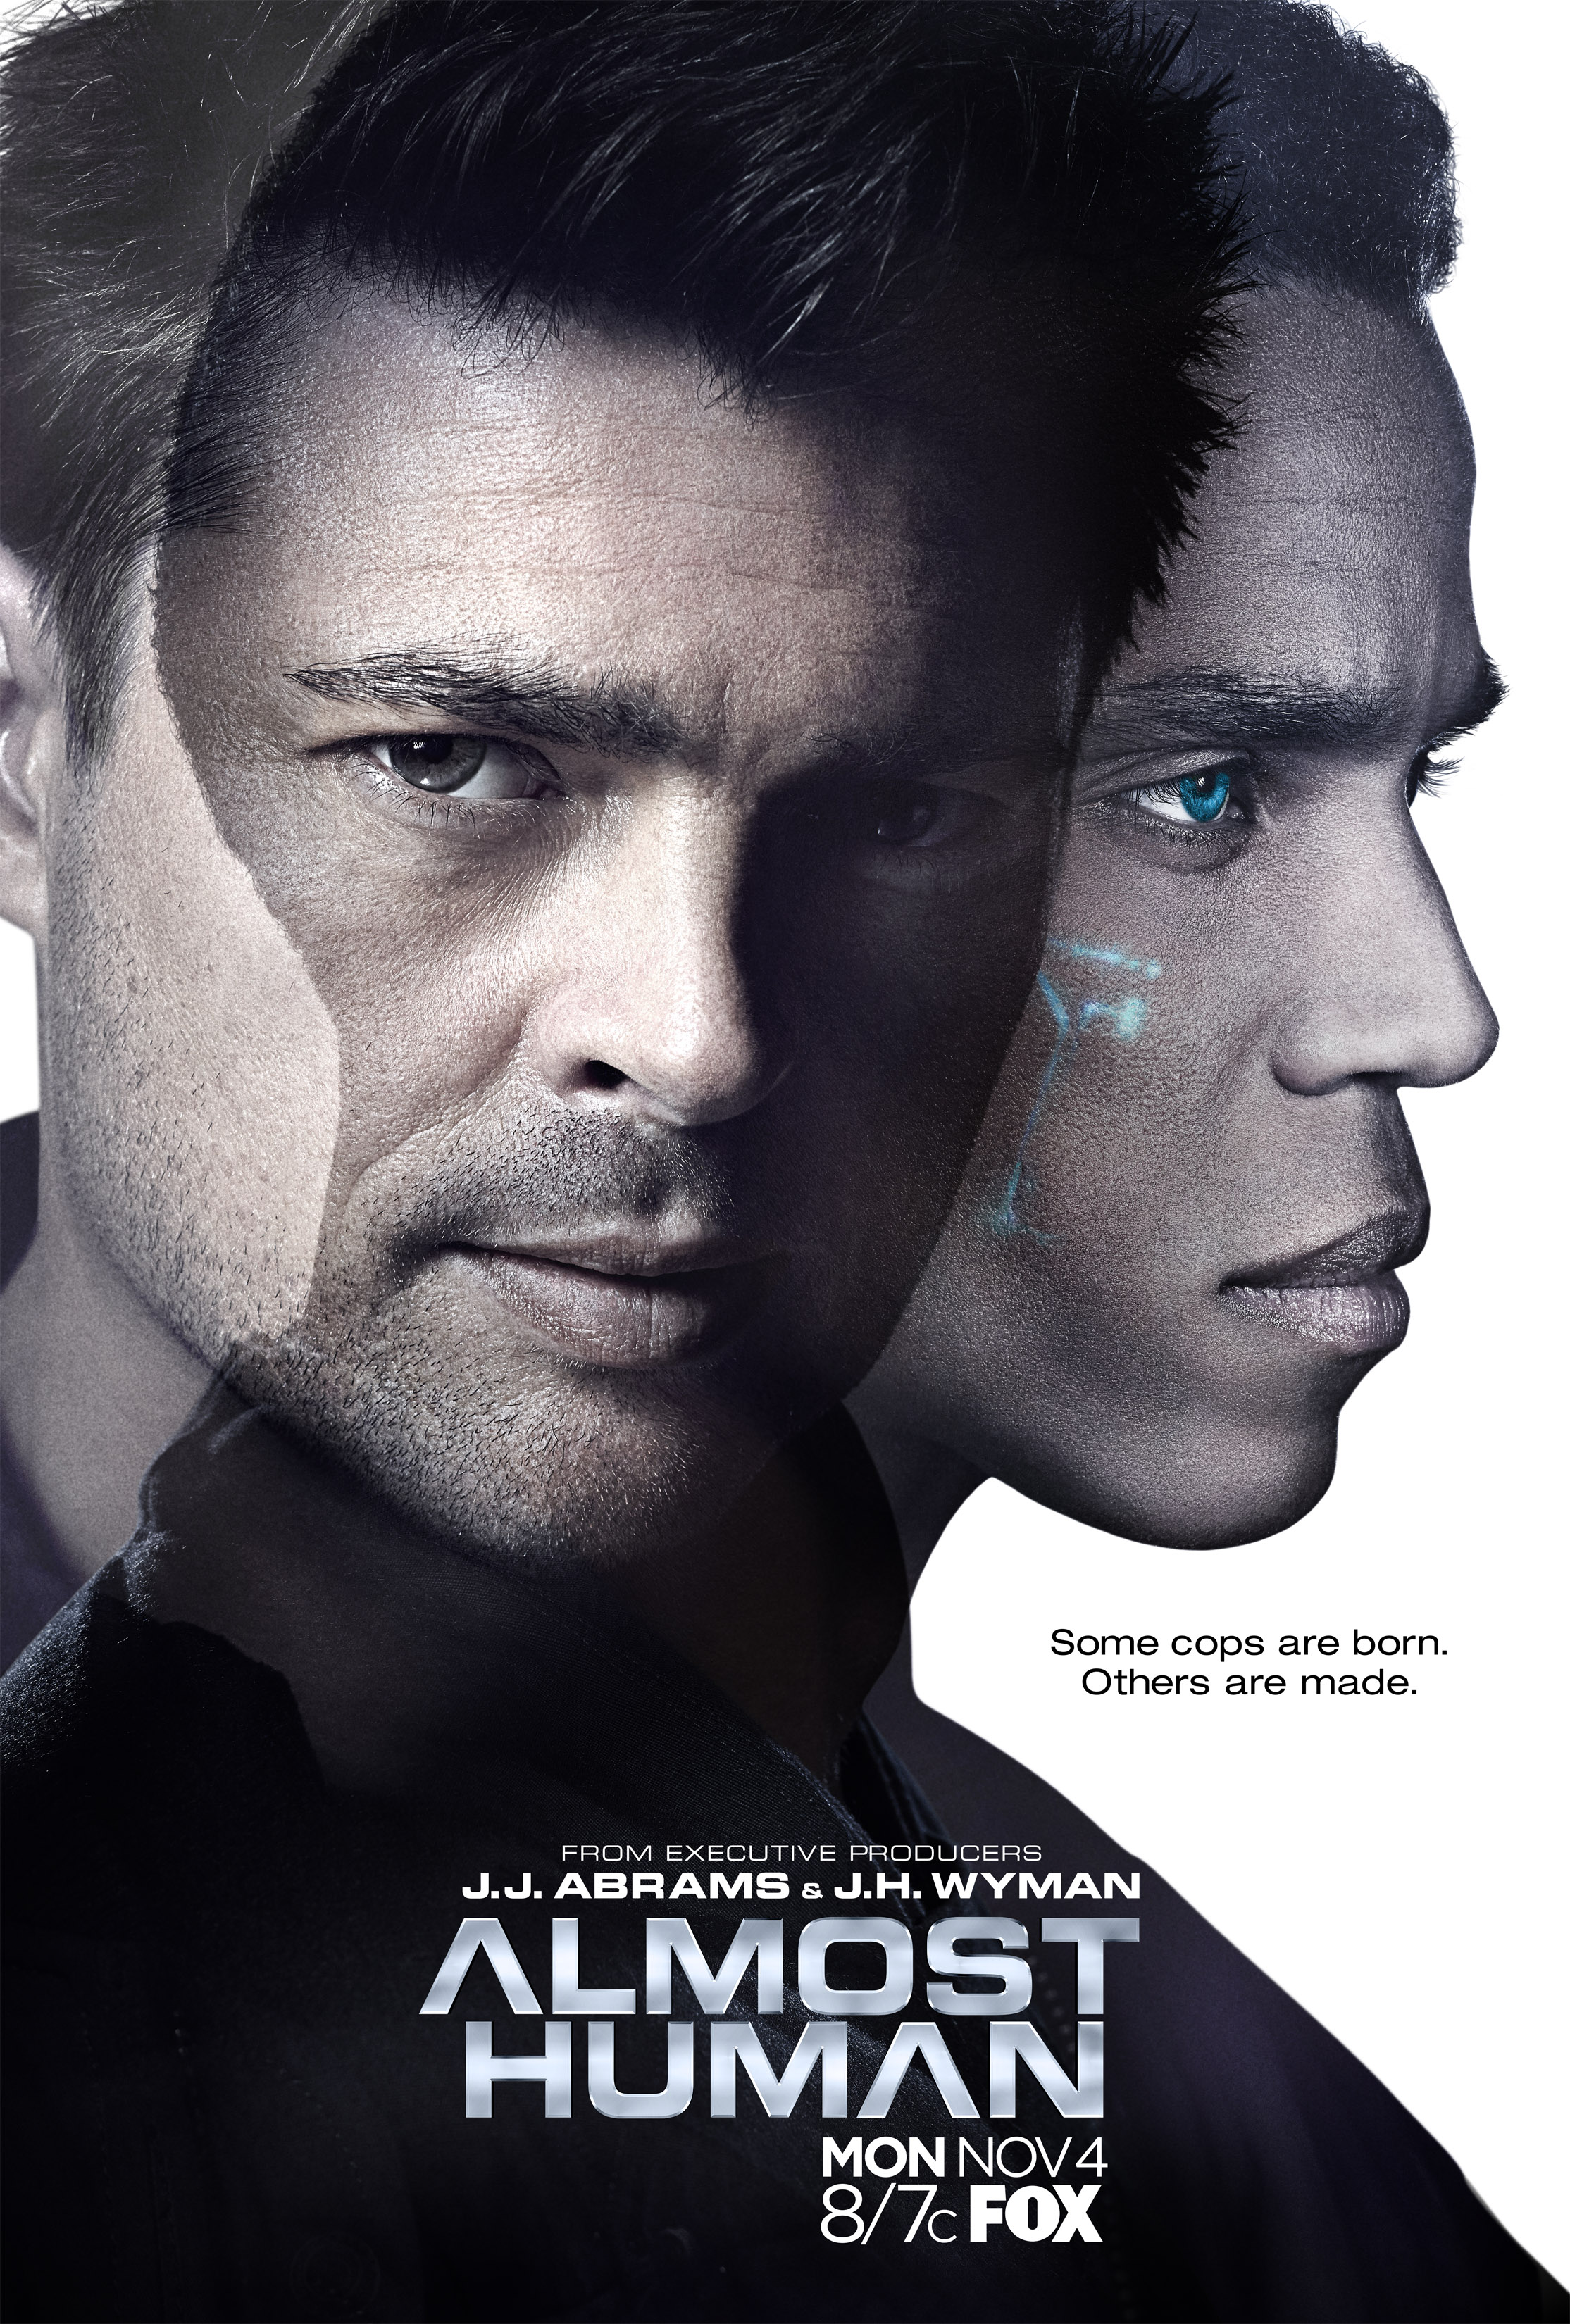 ALMOST HUMAN (2013) TV Show Trailer 2, TV Spots, Poster ...